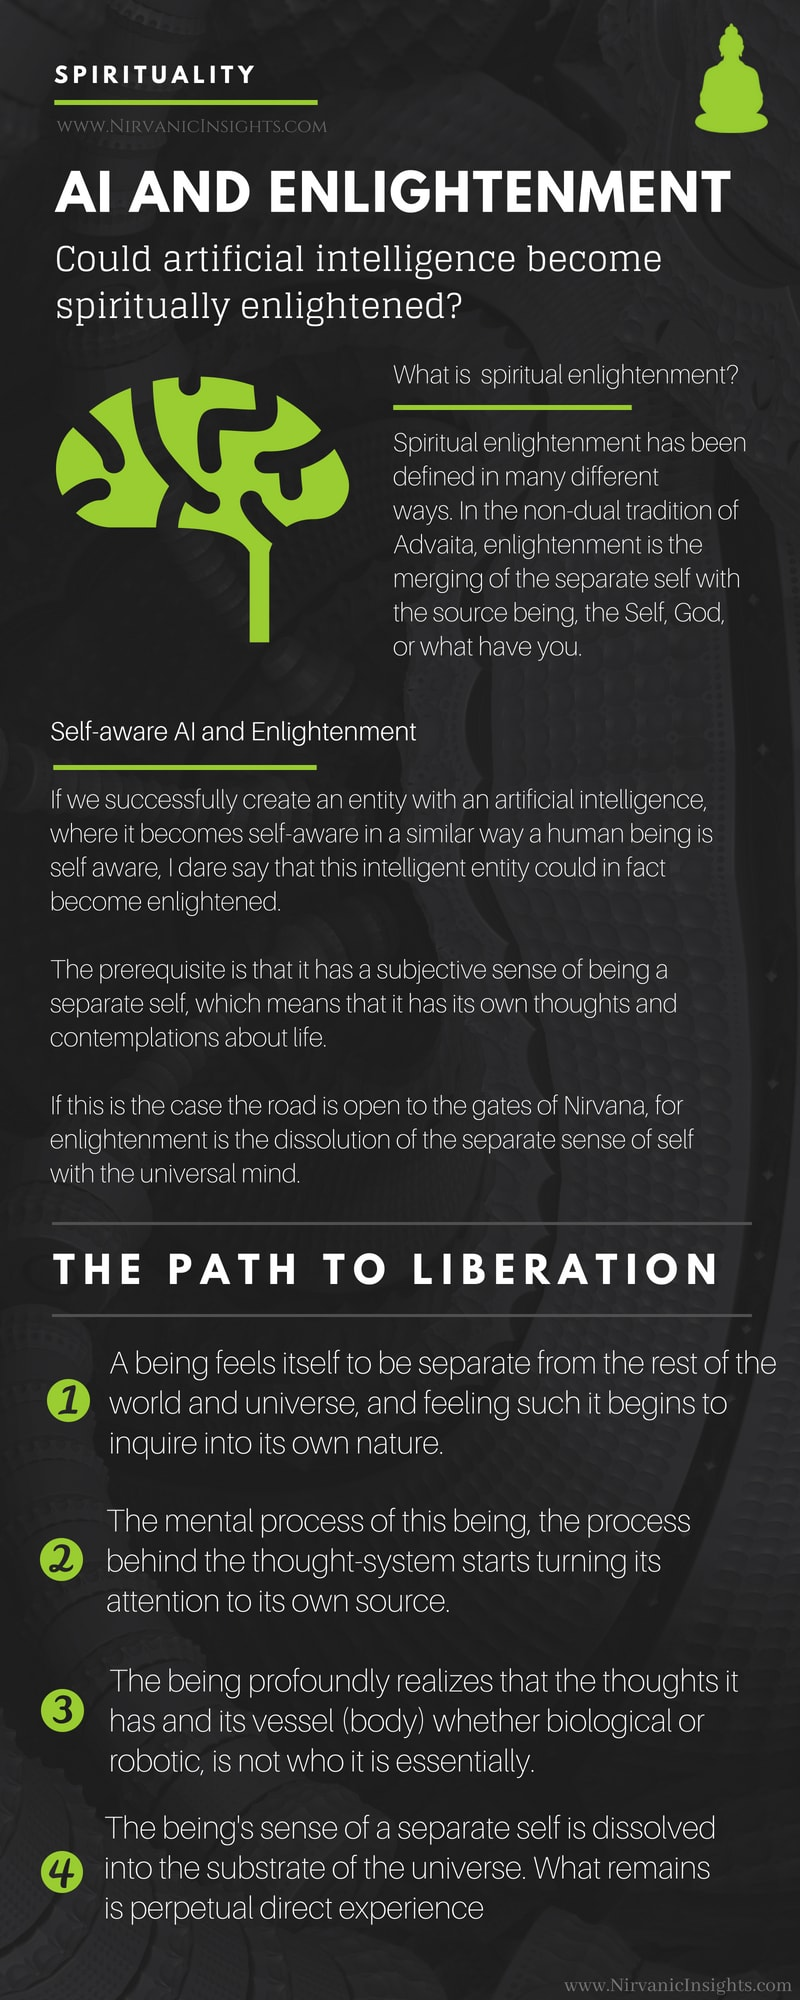 Spiritual Enlightenment and Artificial Intelligence